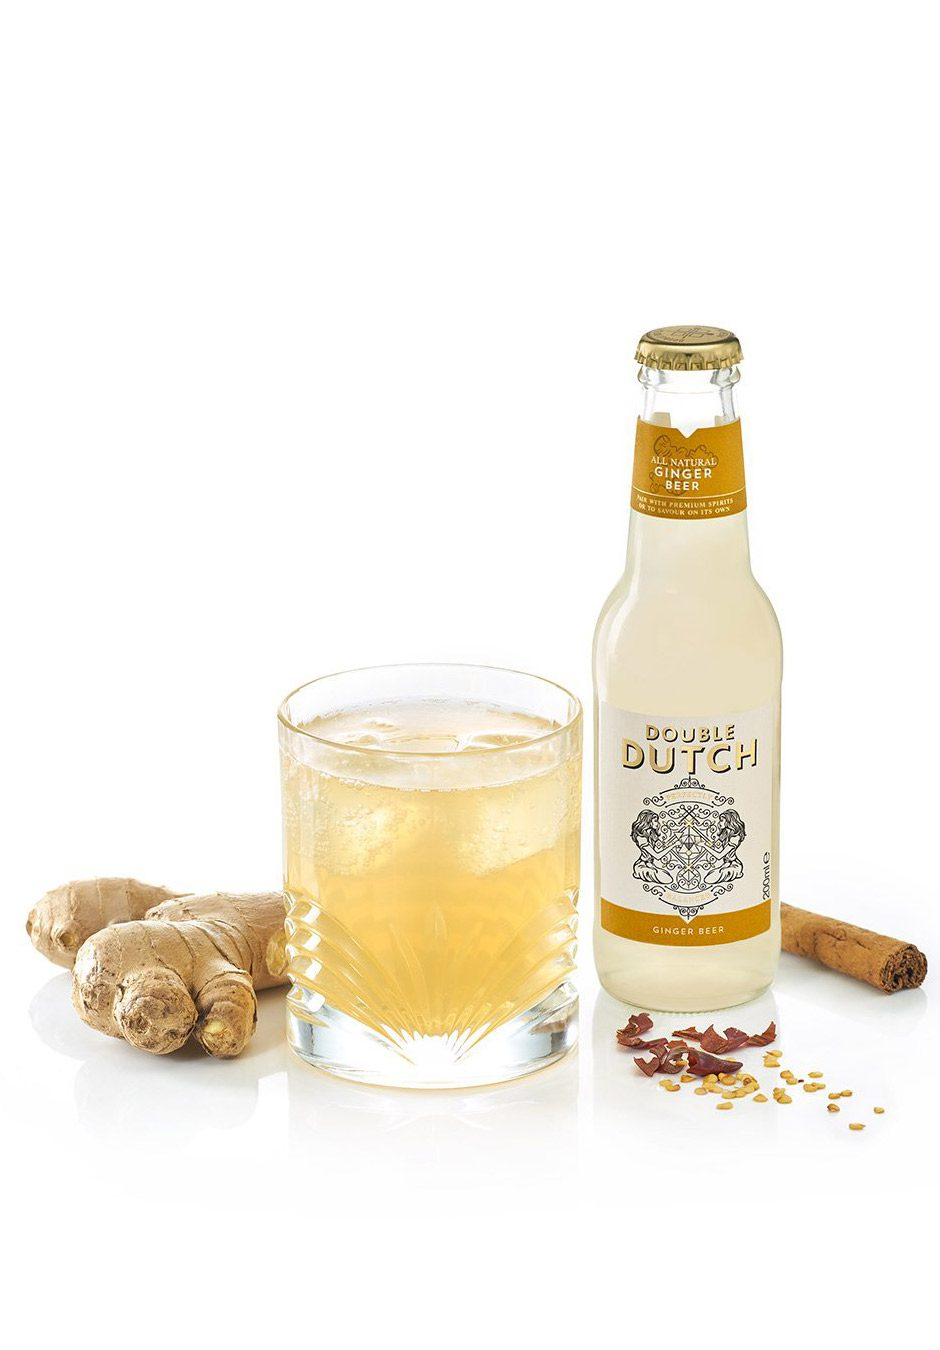 Double Dutch Ginger Beer   200ml   Keico Drinks